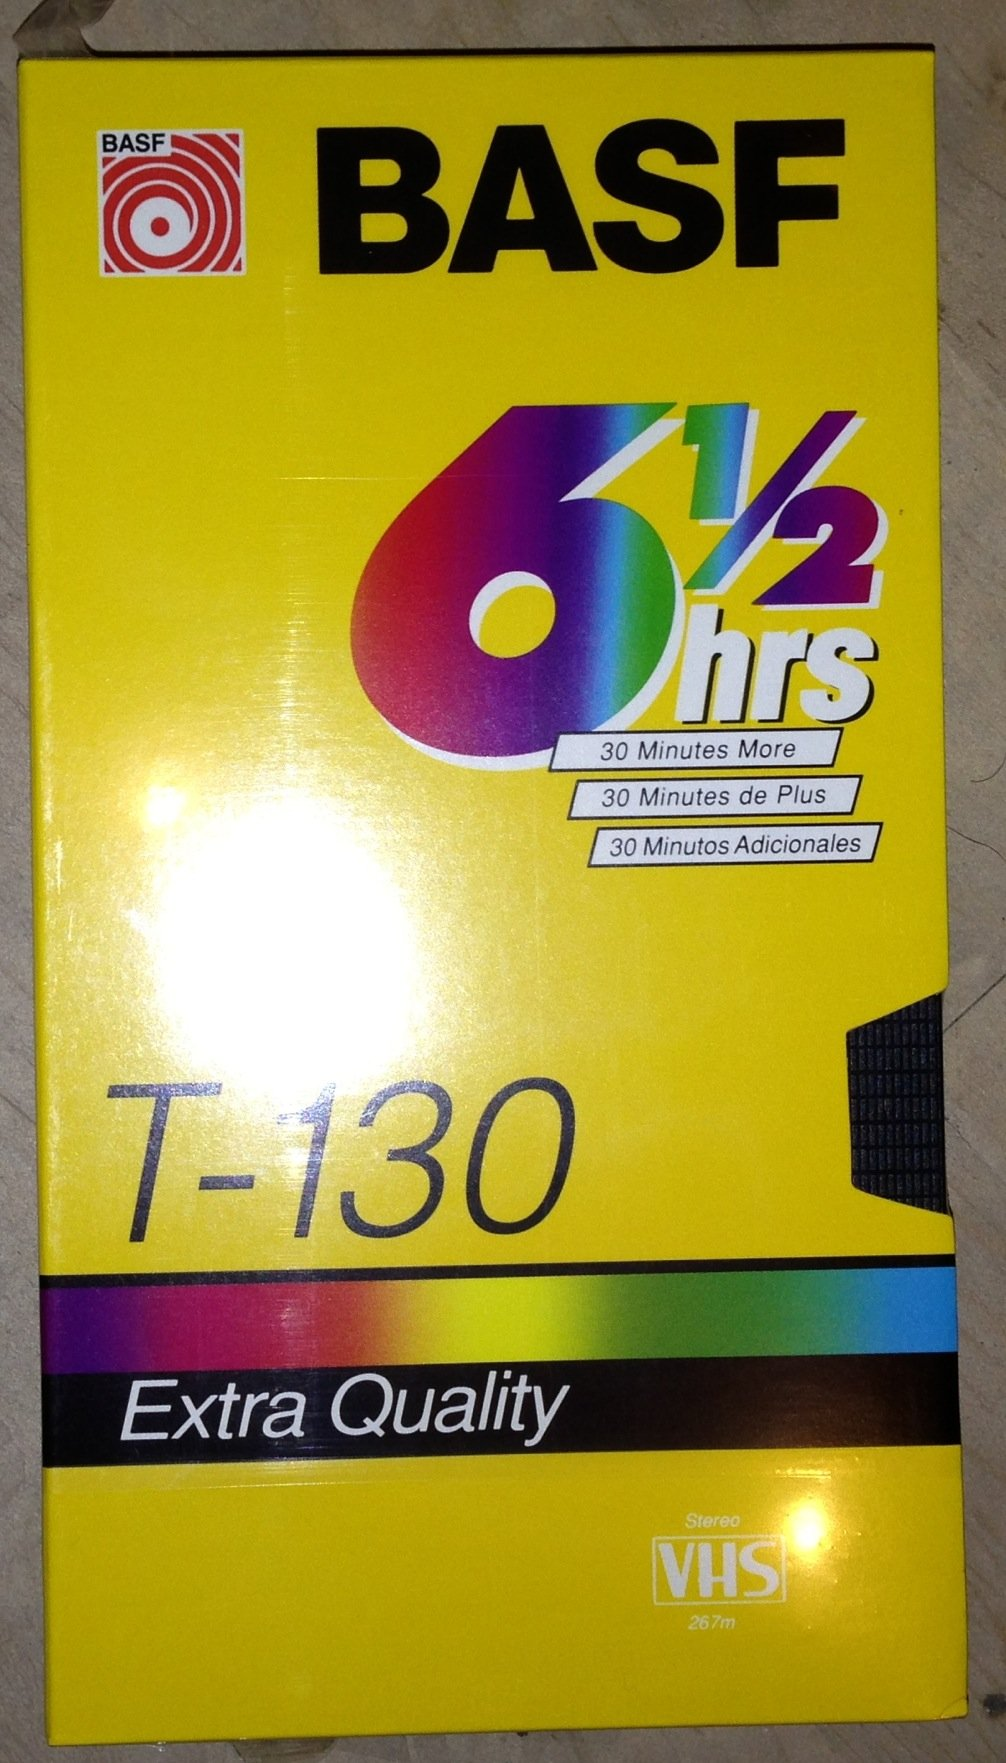 BASF T-130 6 1/2 Hour Extra Quality Blank VHS Tape (Video Cassette Recording Tape)